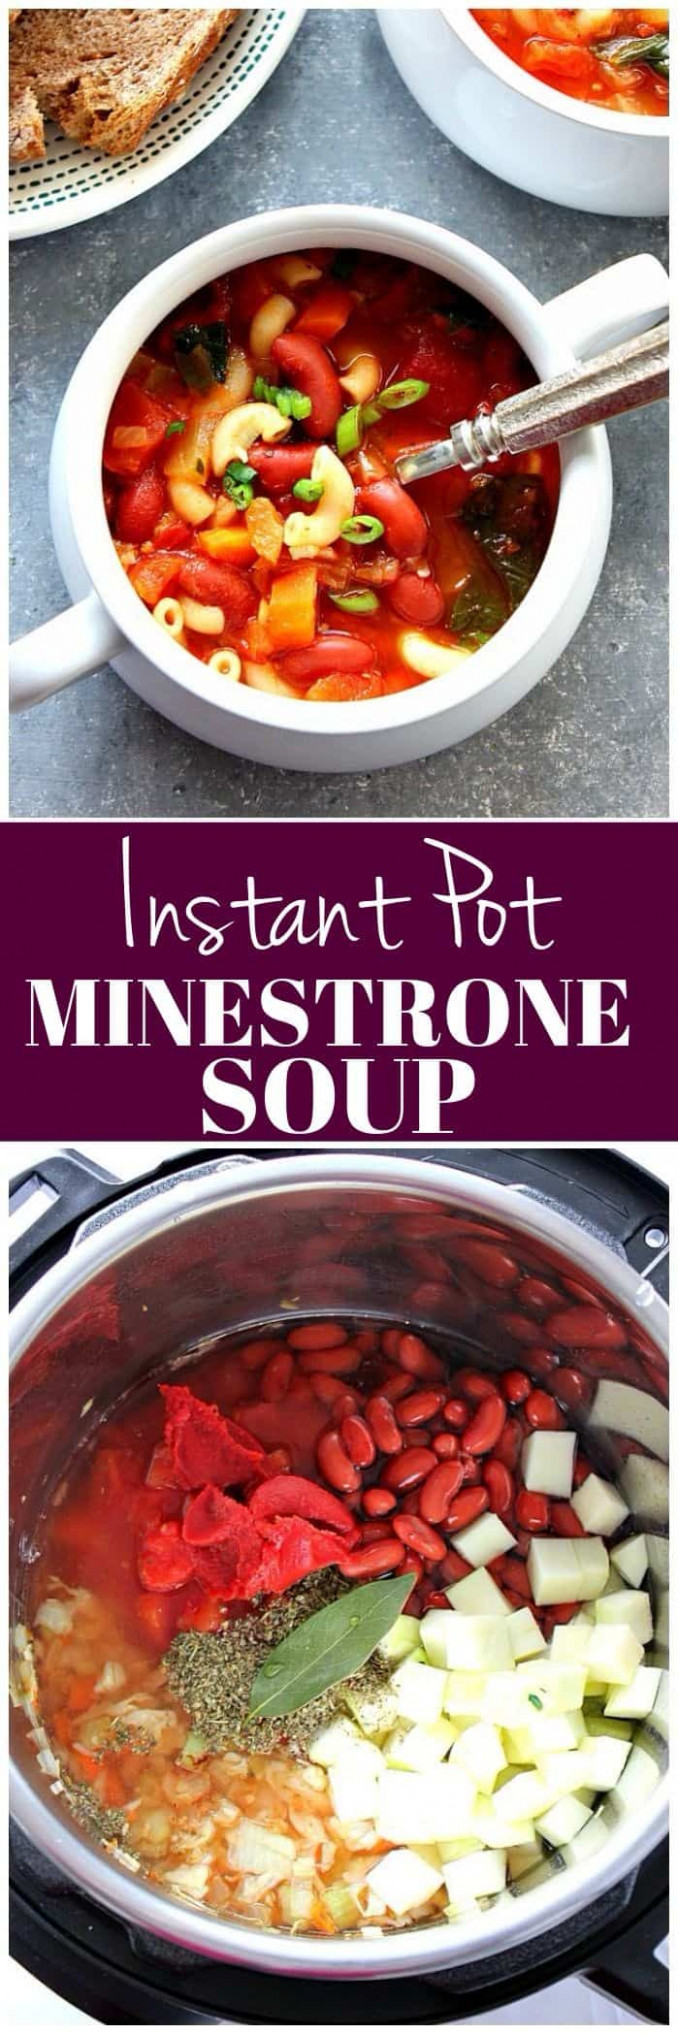 Instant Pot Minestrone Soup Recipe - Crunchy Creamy Sweet - easy vegetable instant pot recipes